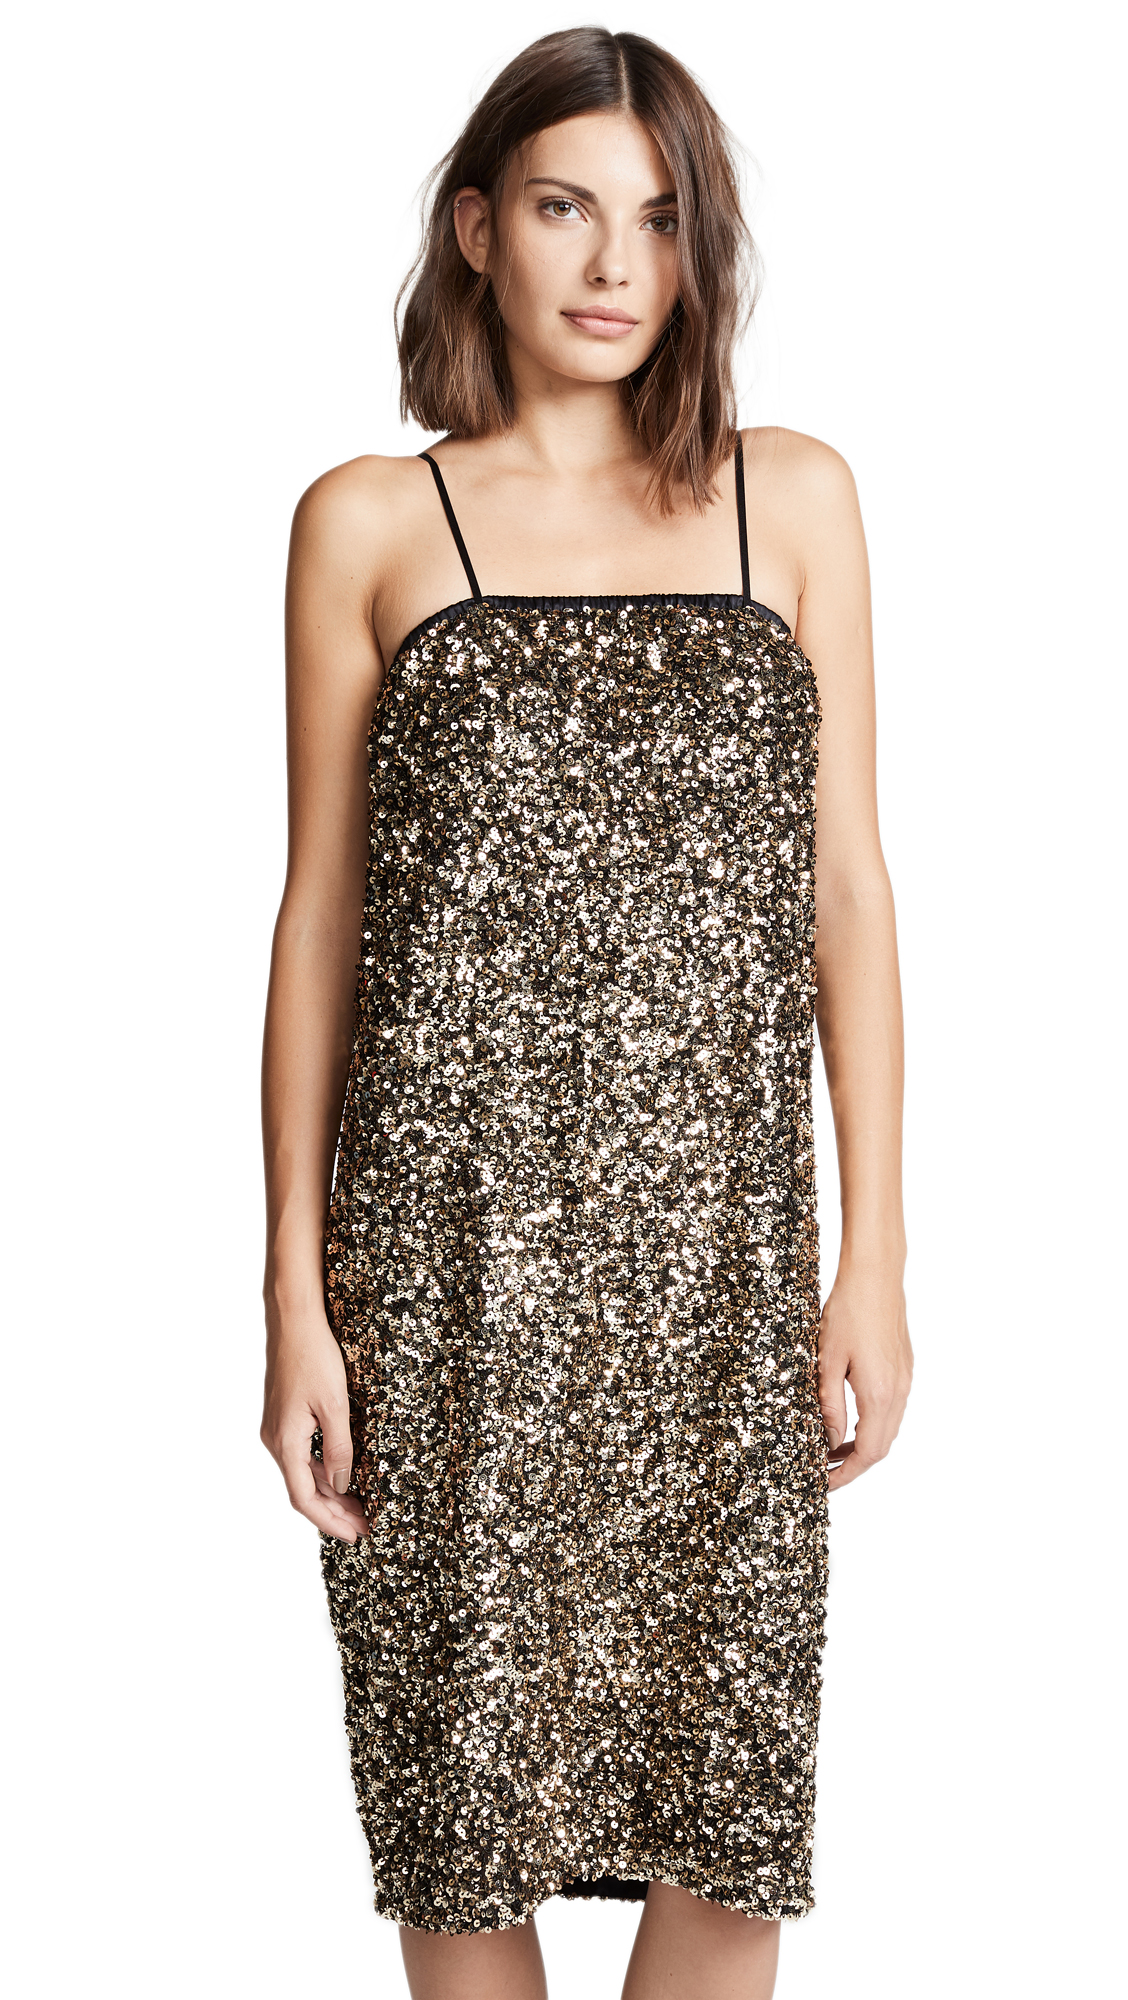 LOYD/FORD Sequin Cami Dress in Gold